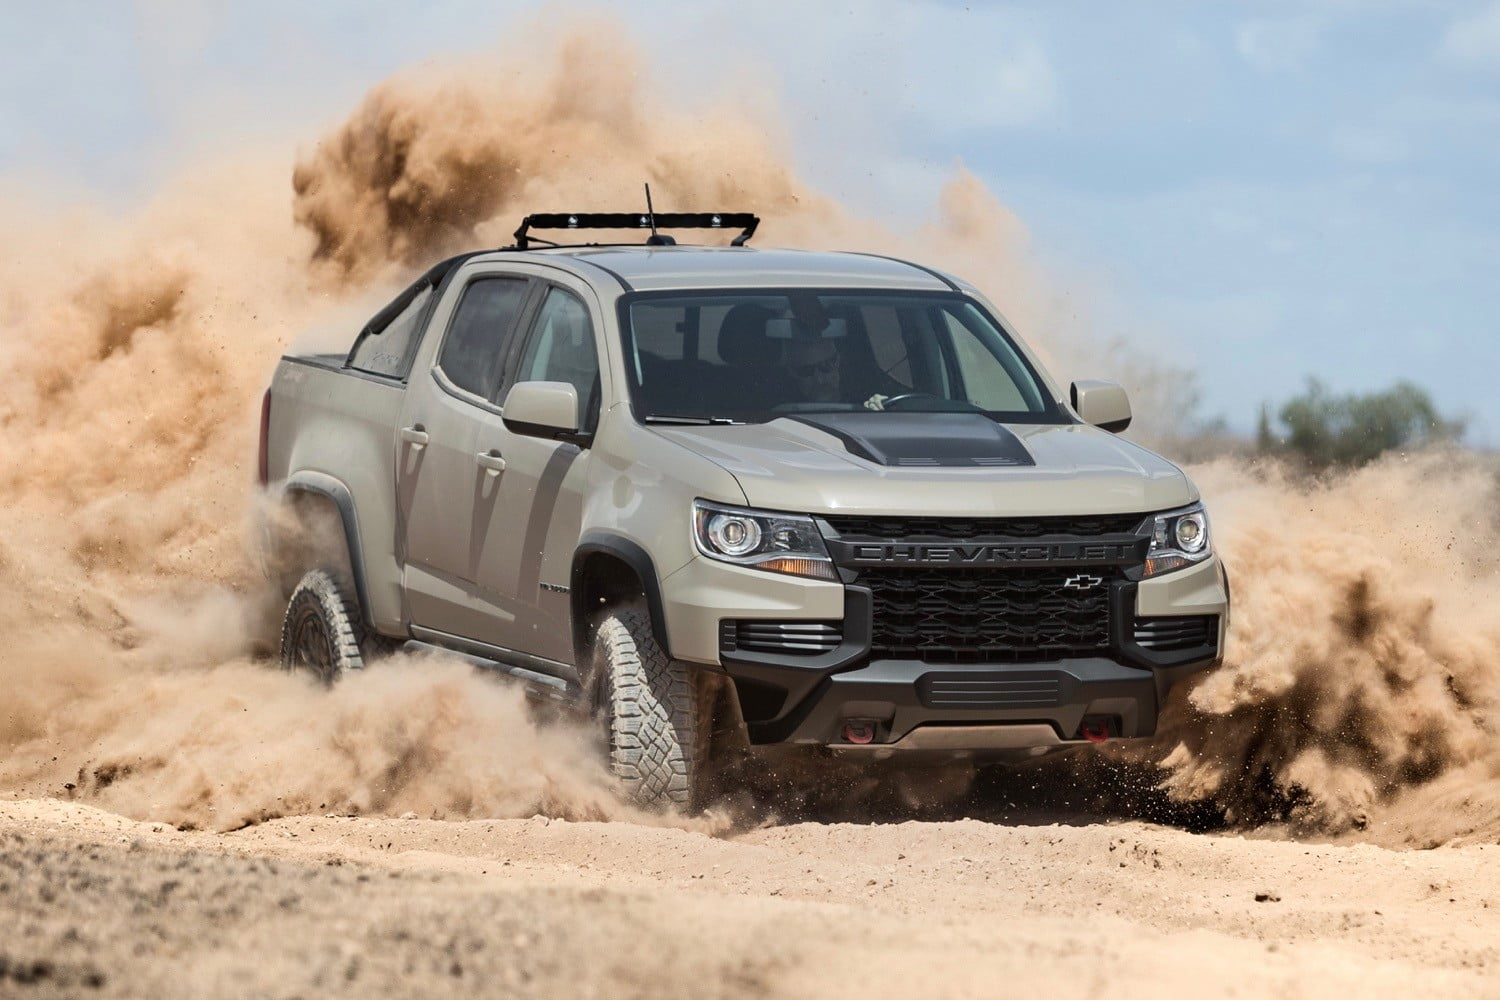 2021 Chevrolet Colorado gets a tougher exterior, but what's underneath?